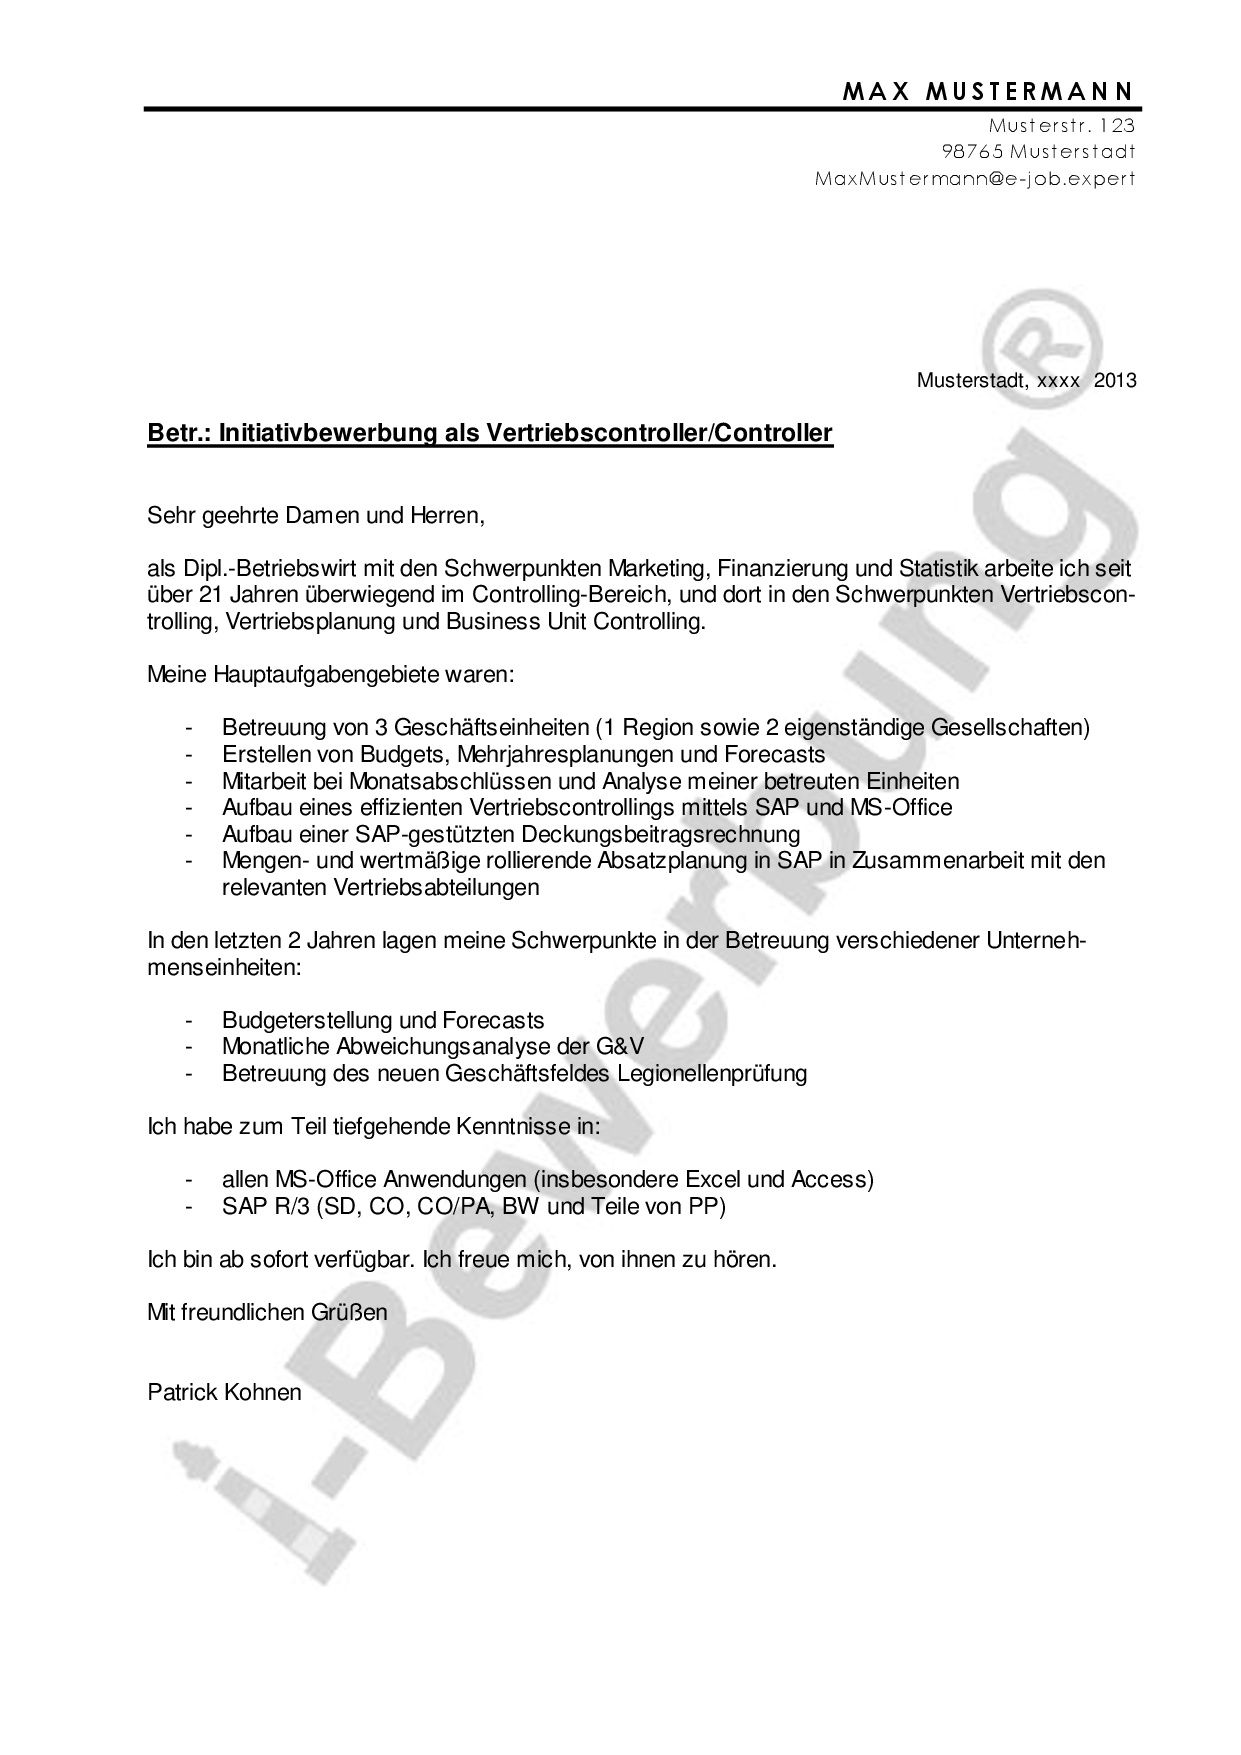 Formulierung Anschreiben zur Stellenbewerbung: Der Einleitungssatz ist  extrem wichtig!